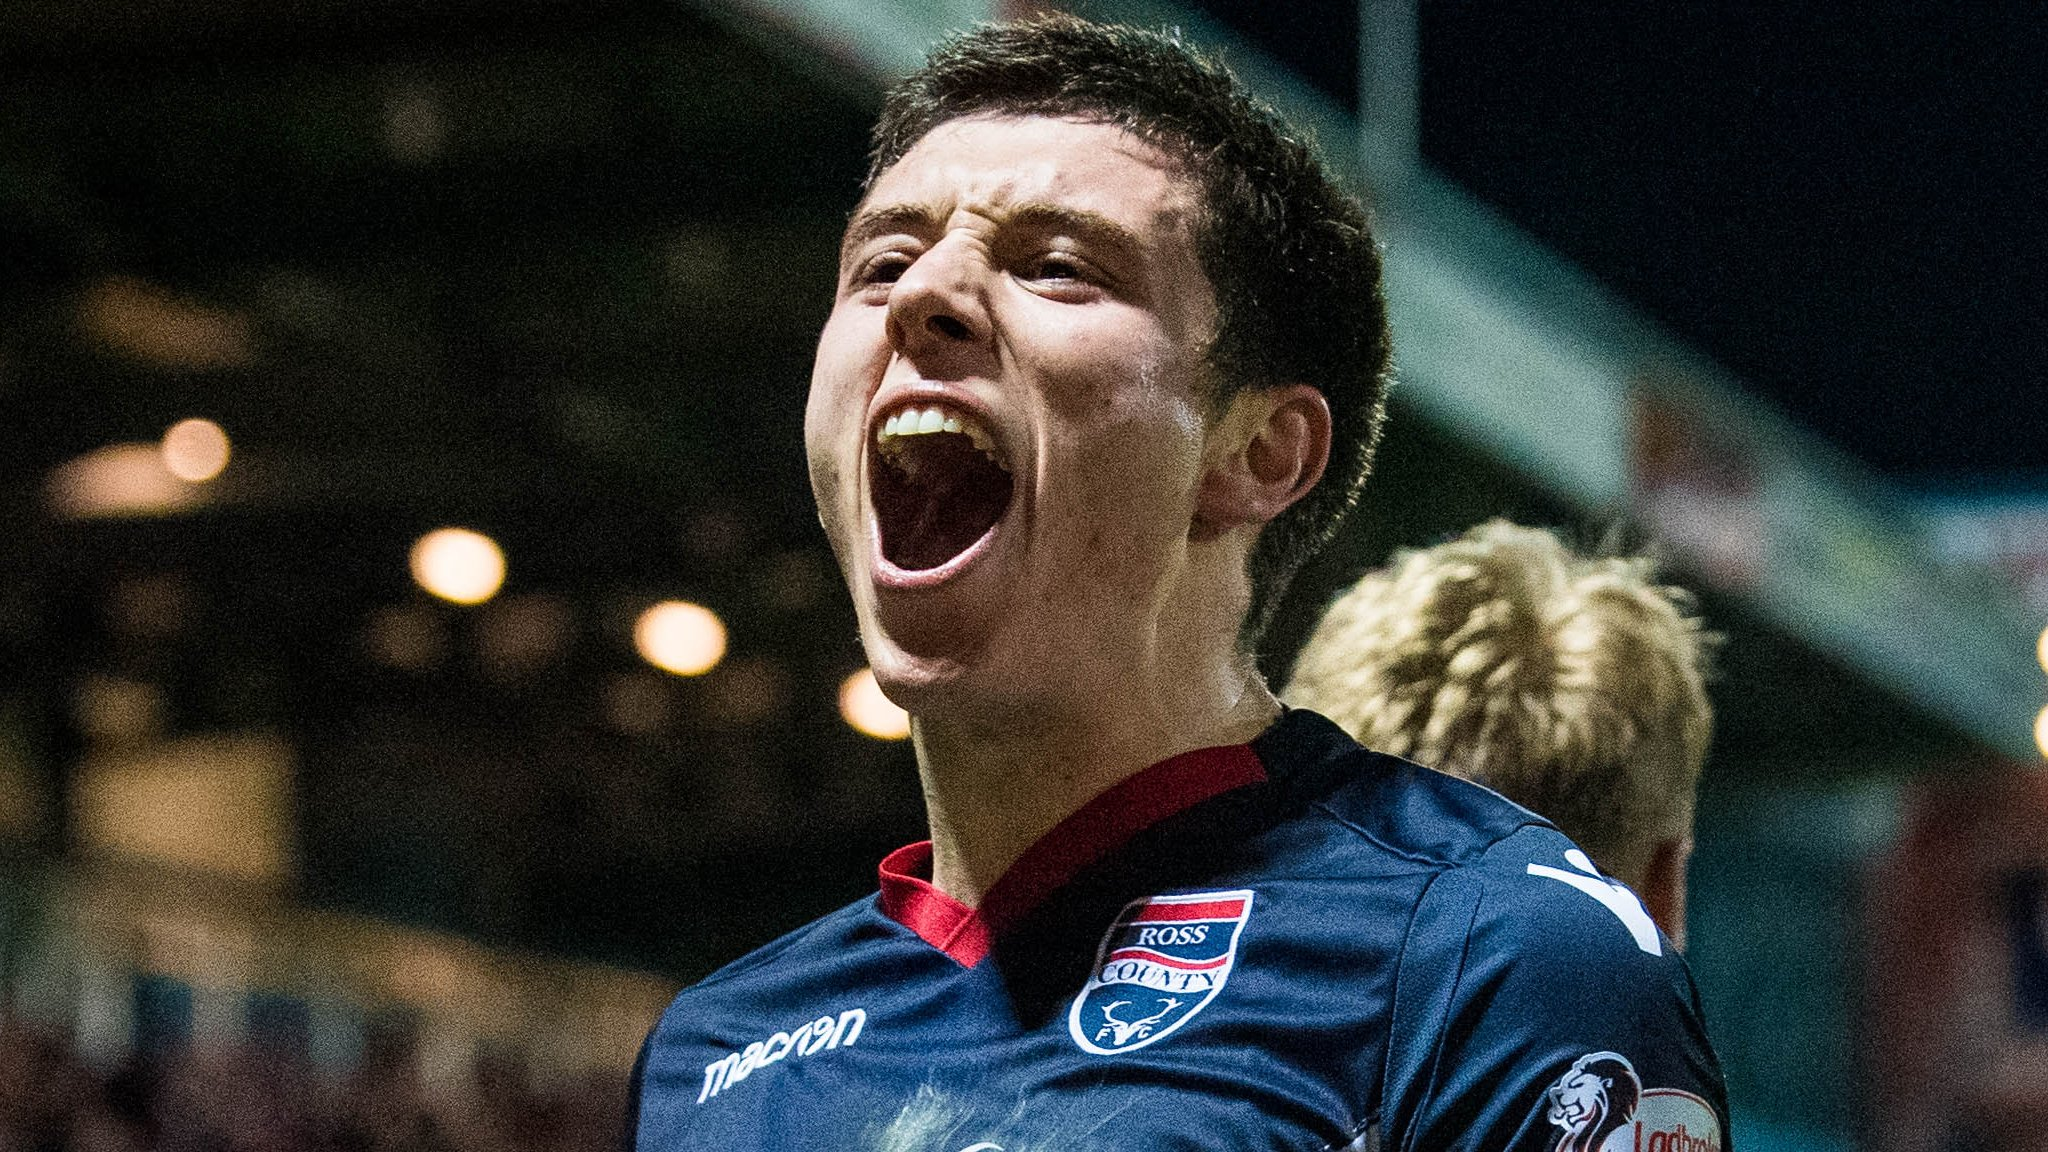 Ross County 2-1 Inverness CT: Stewart's late goal clinches win